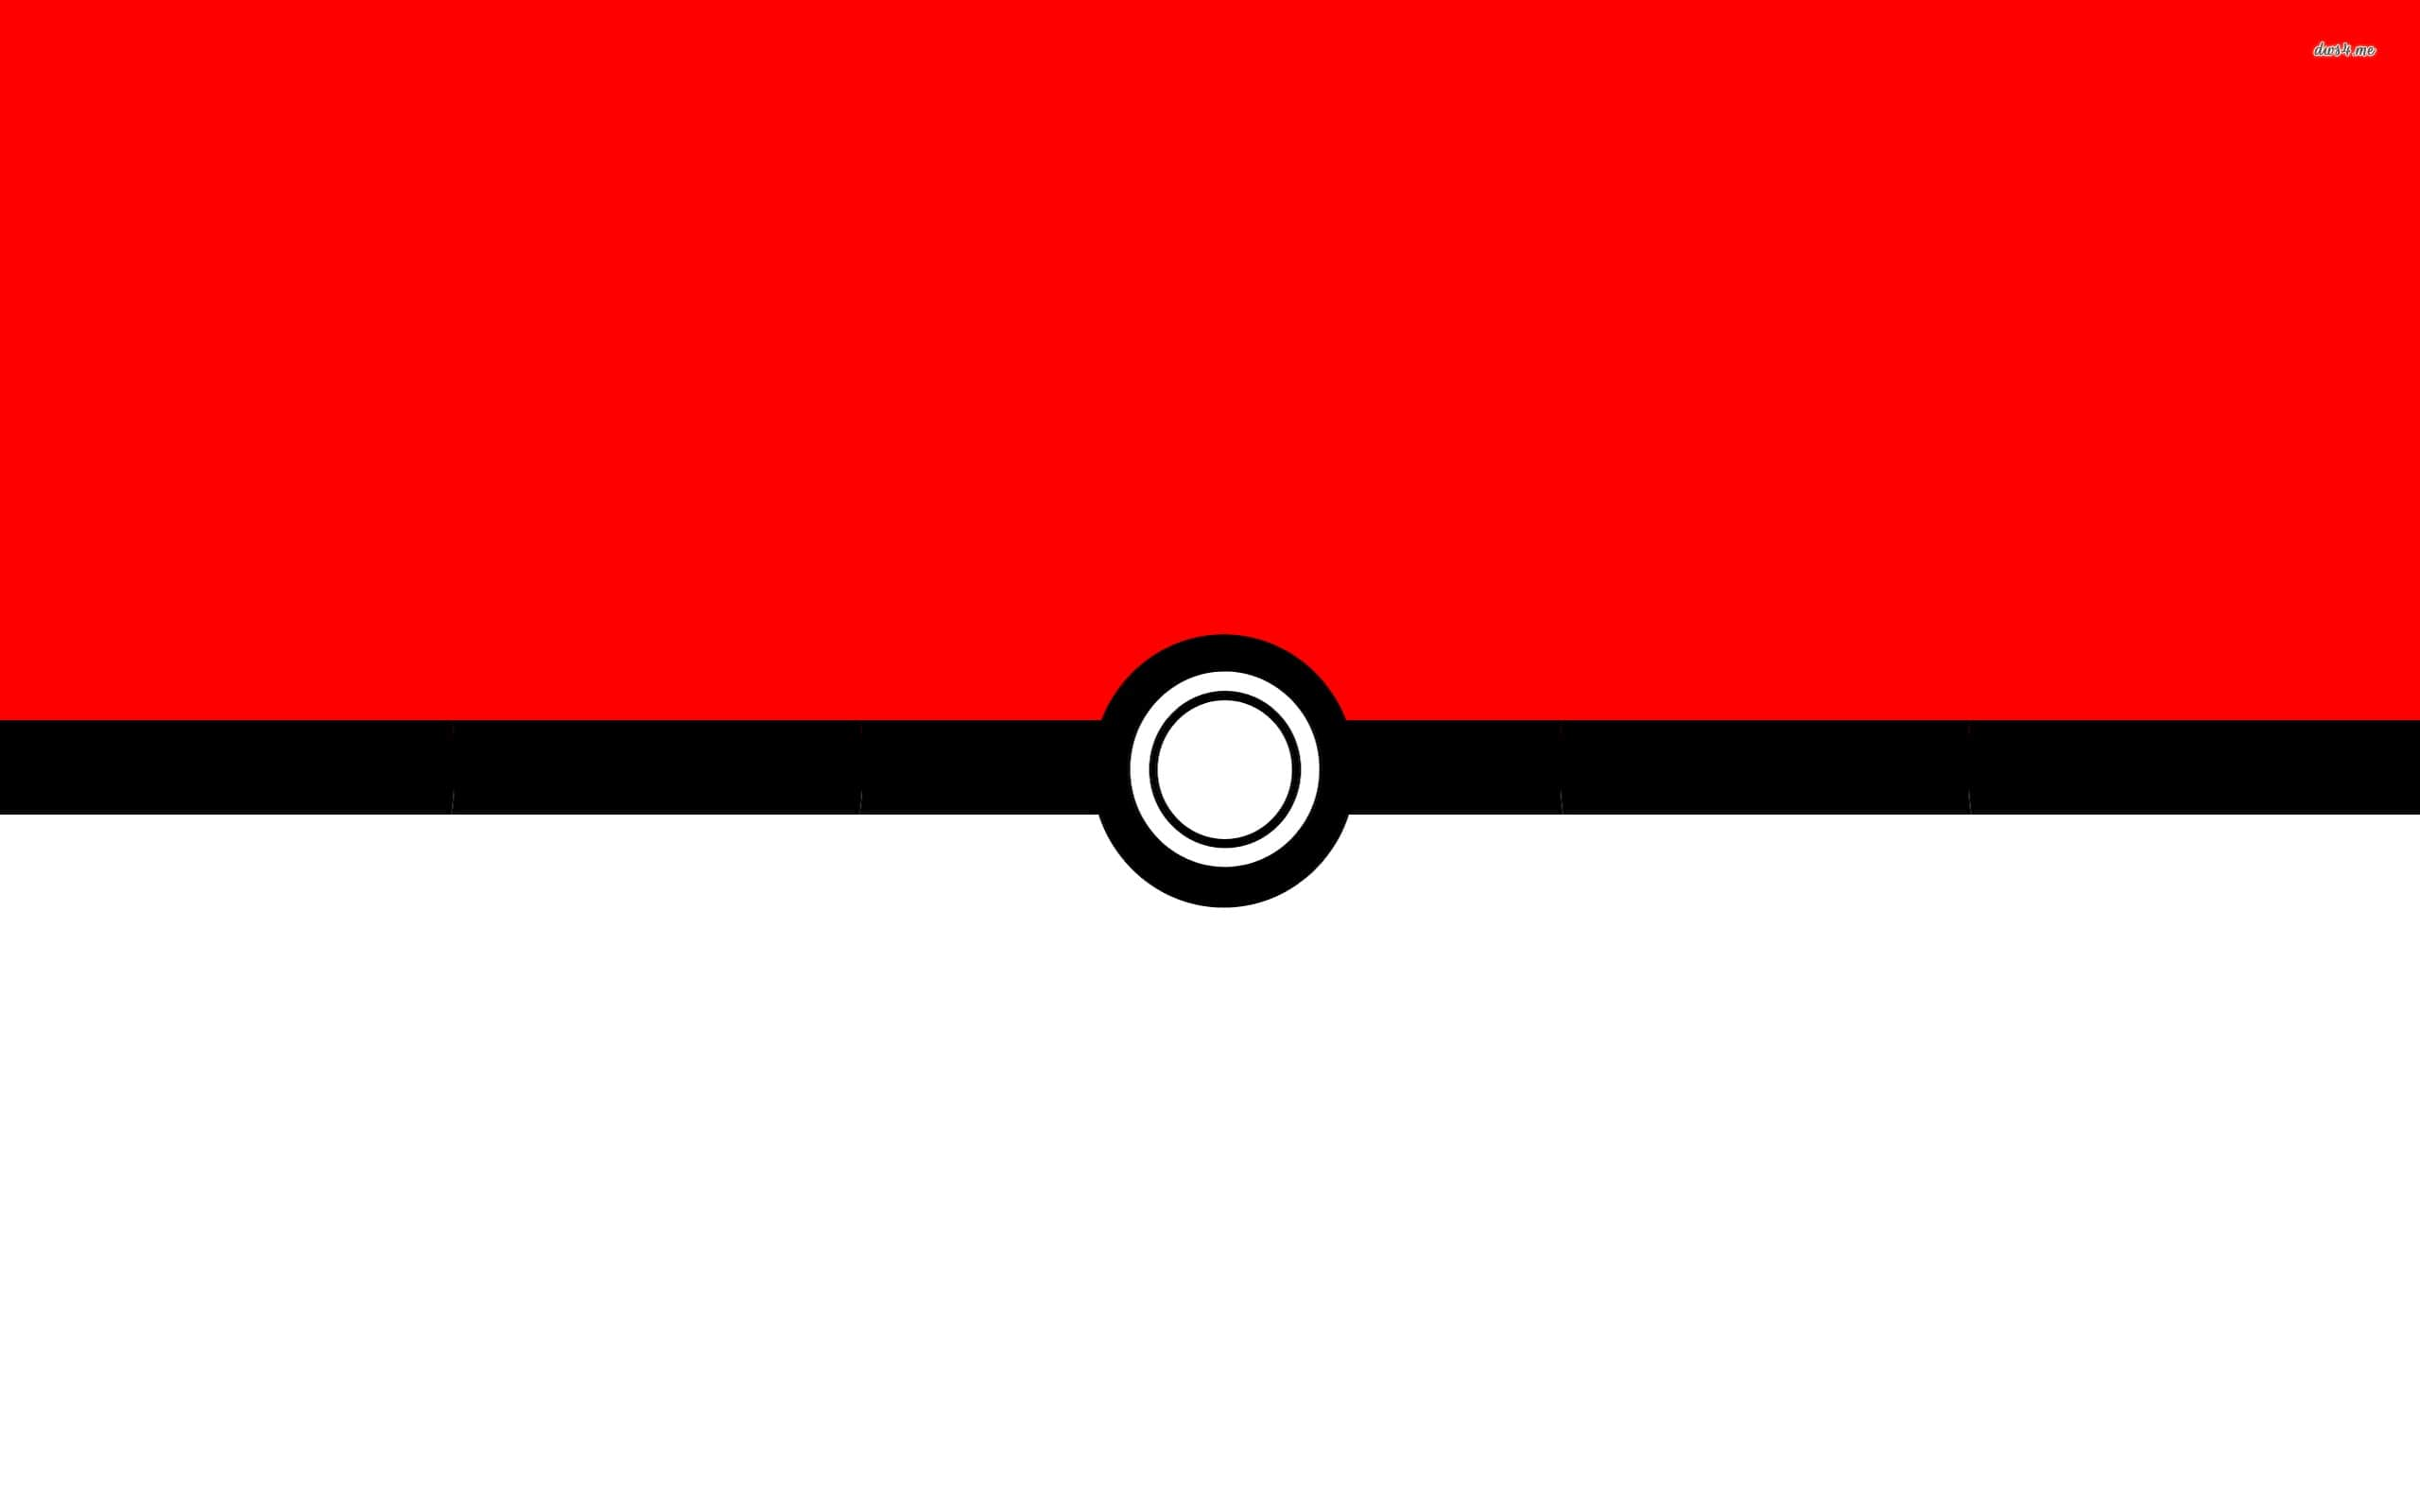 Pokemon Go Wallpapers hd